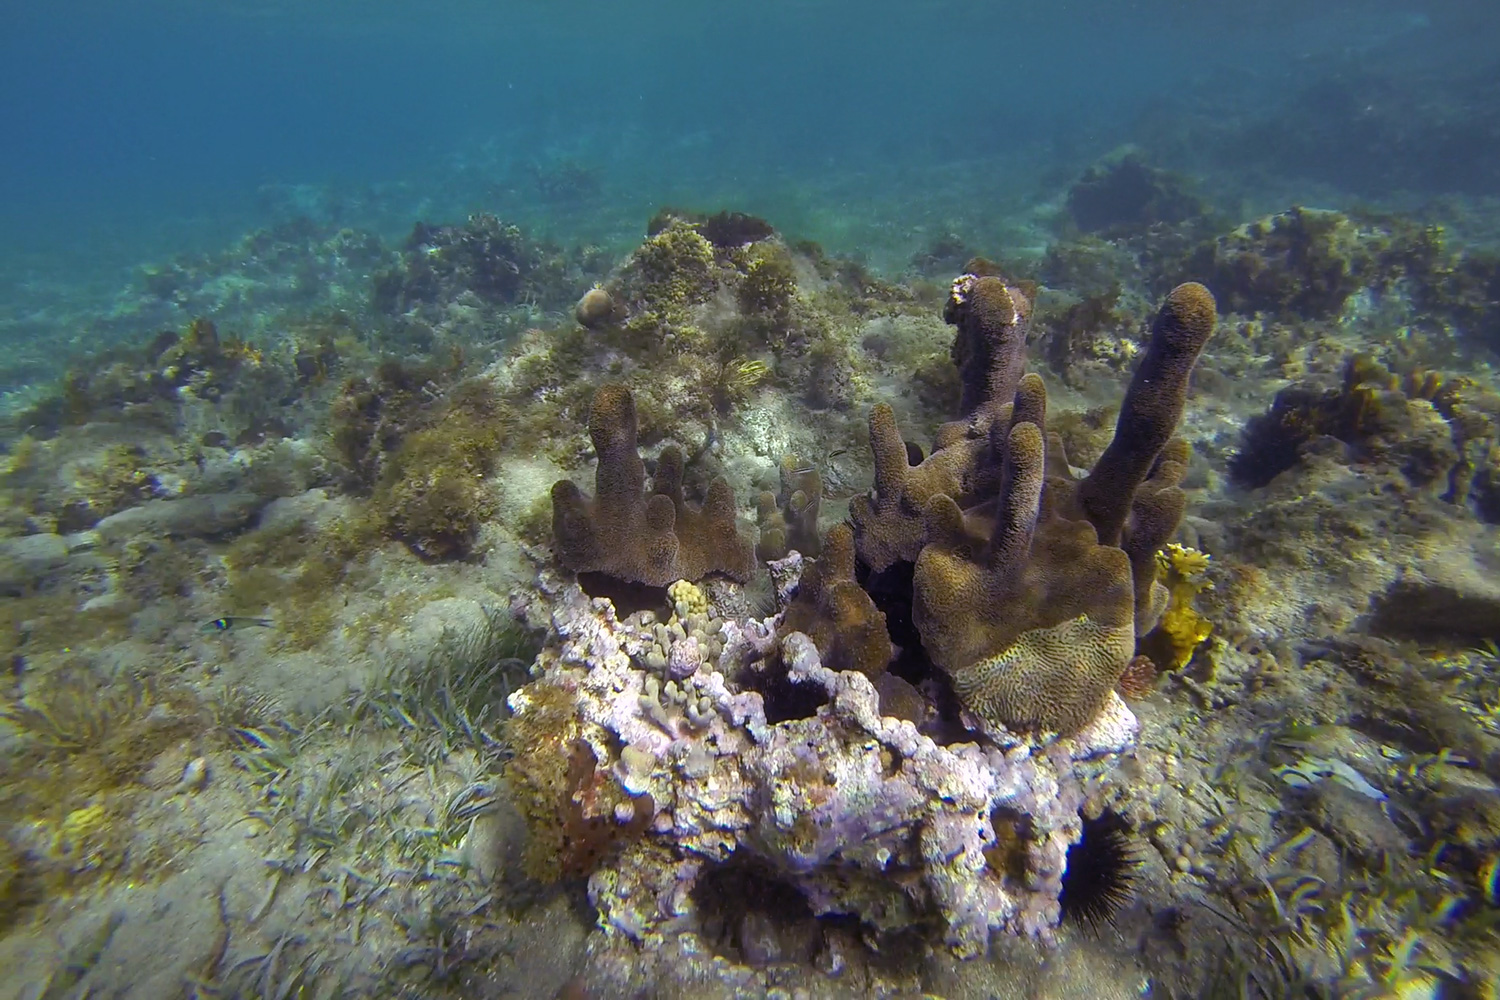 This is called Club Finger Coral, known for its blunt, swollen tips.